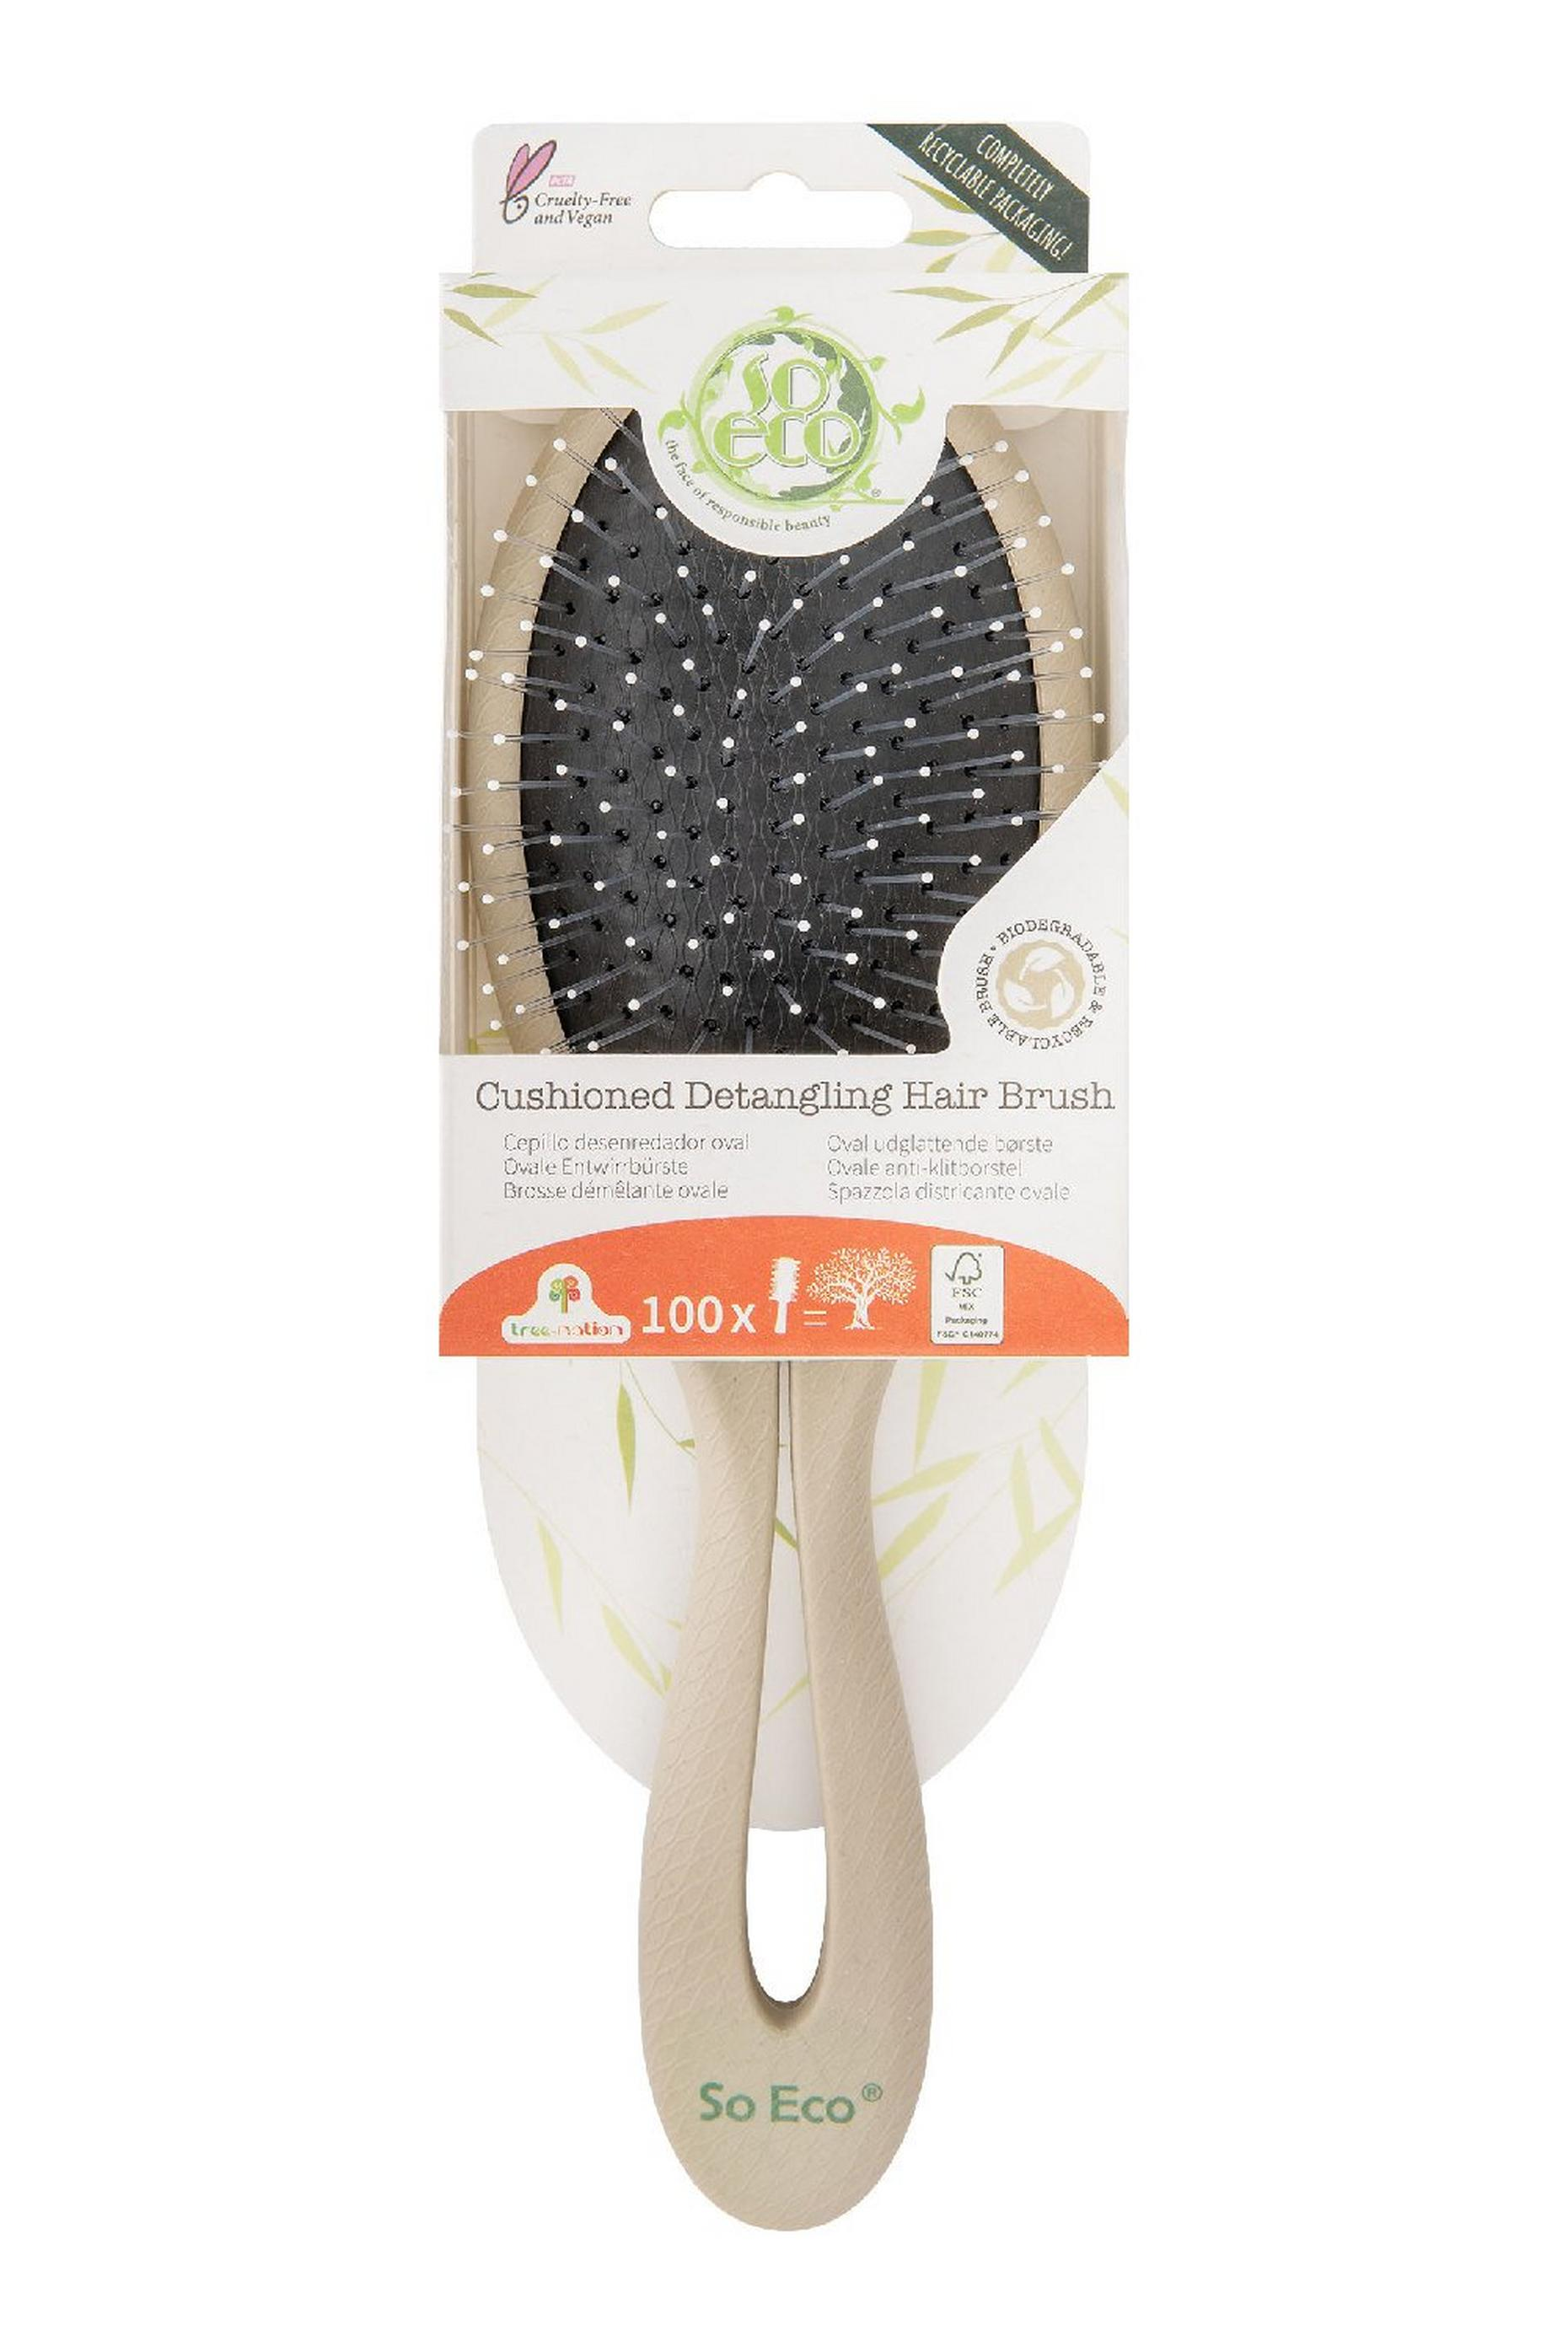 So Eco Biodegradable Detangling Brush